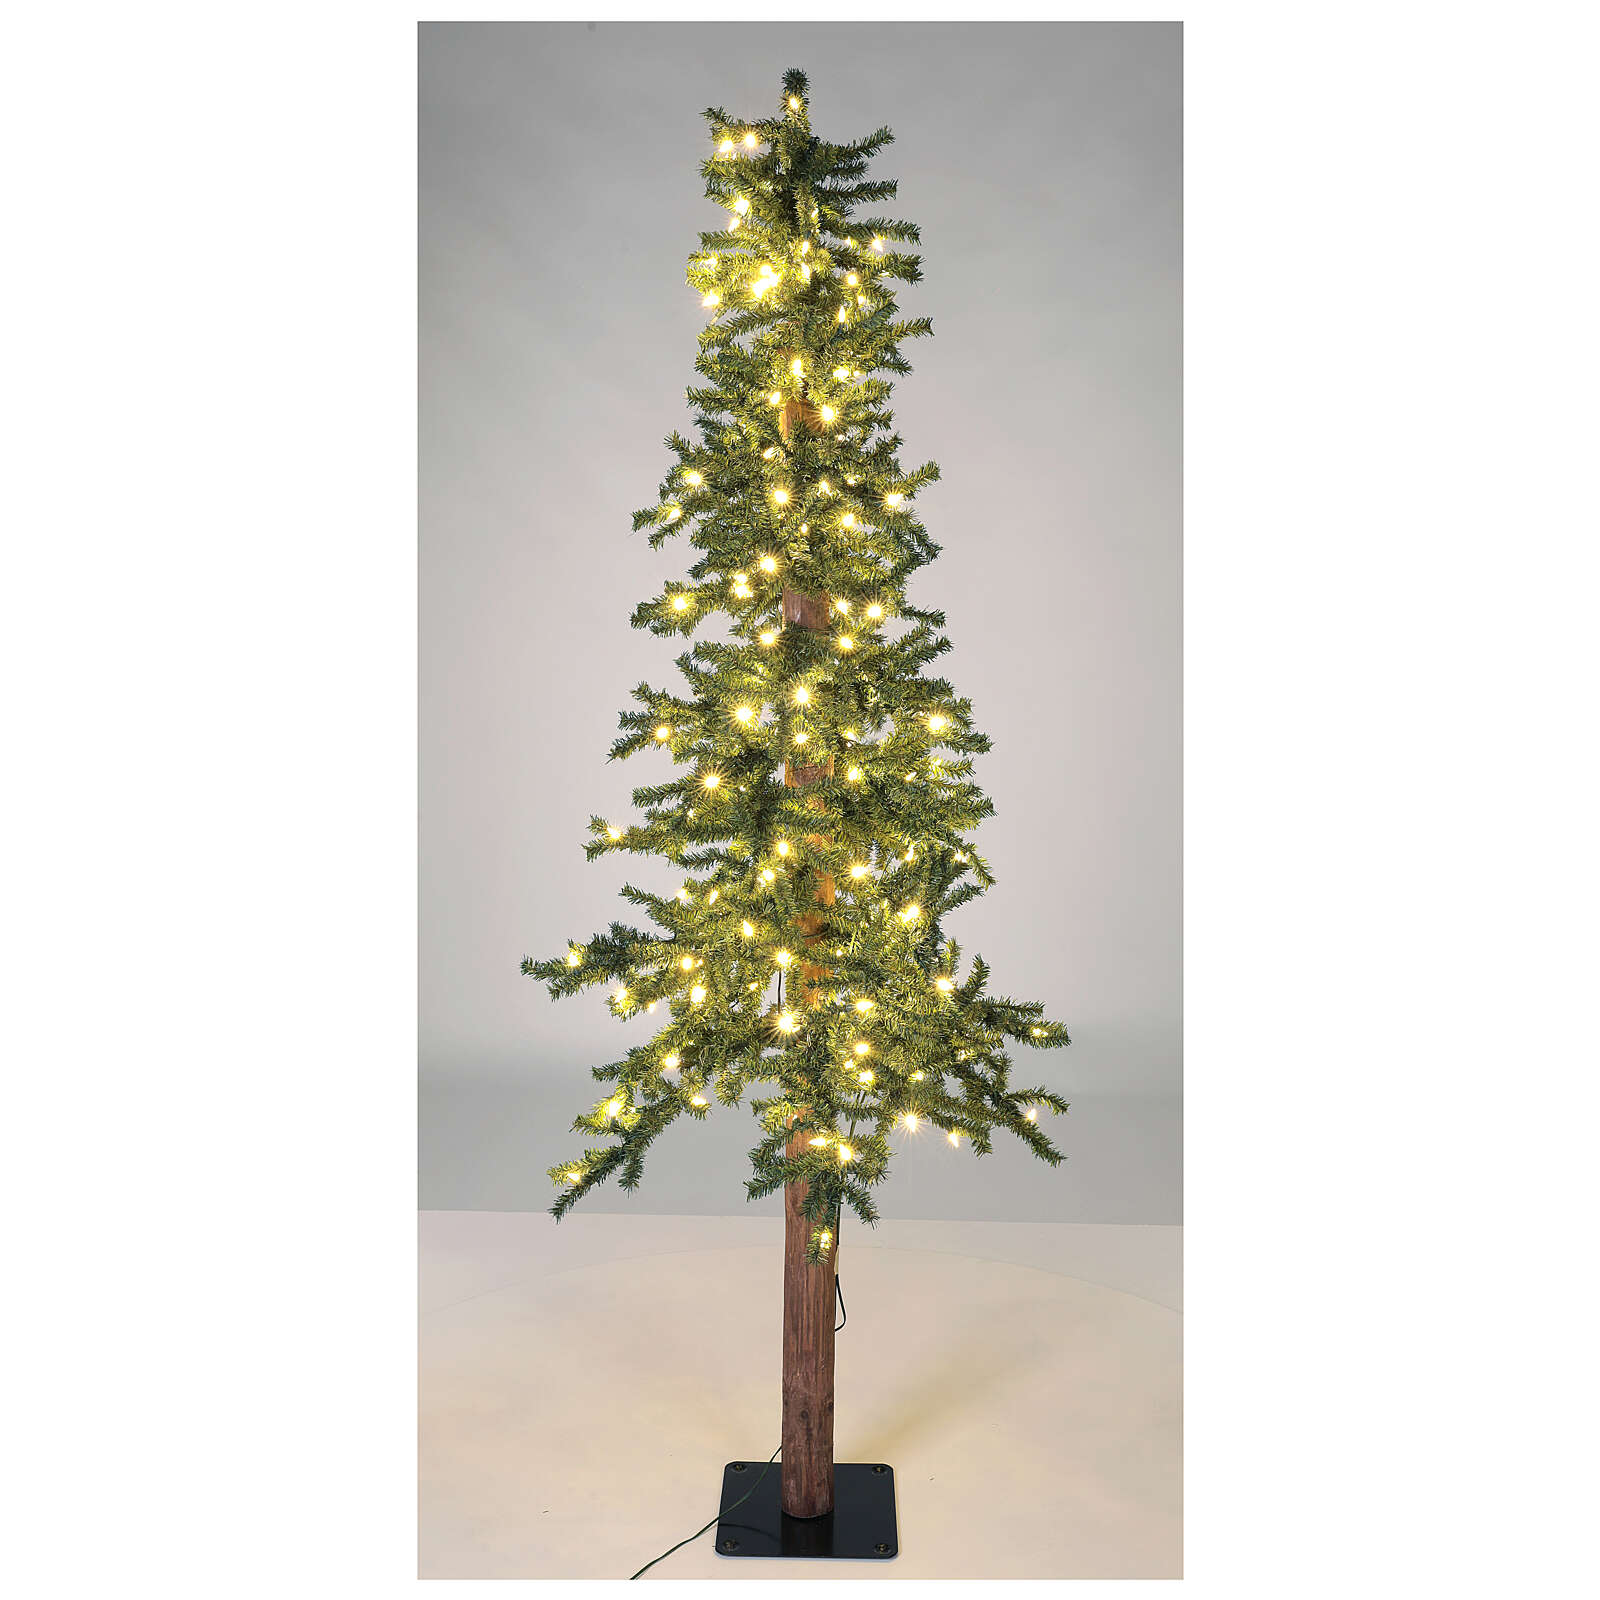 STOCK Slim Forest Christmas tree 210 cm 300 warm white LEDs outdoor 3